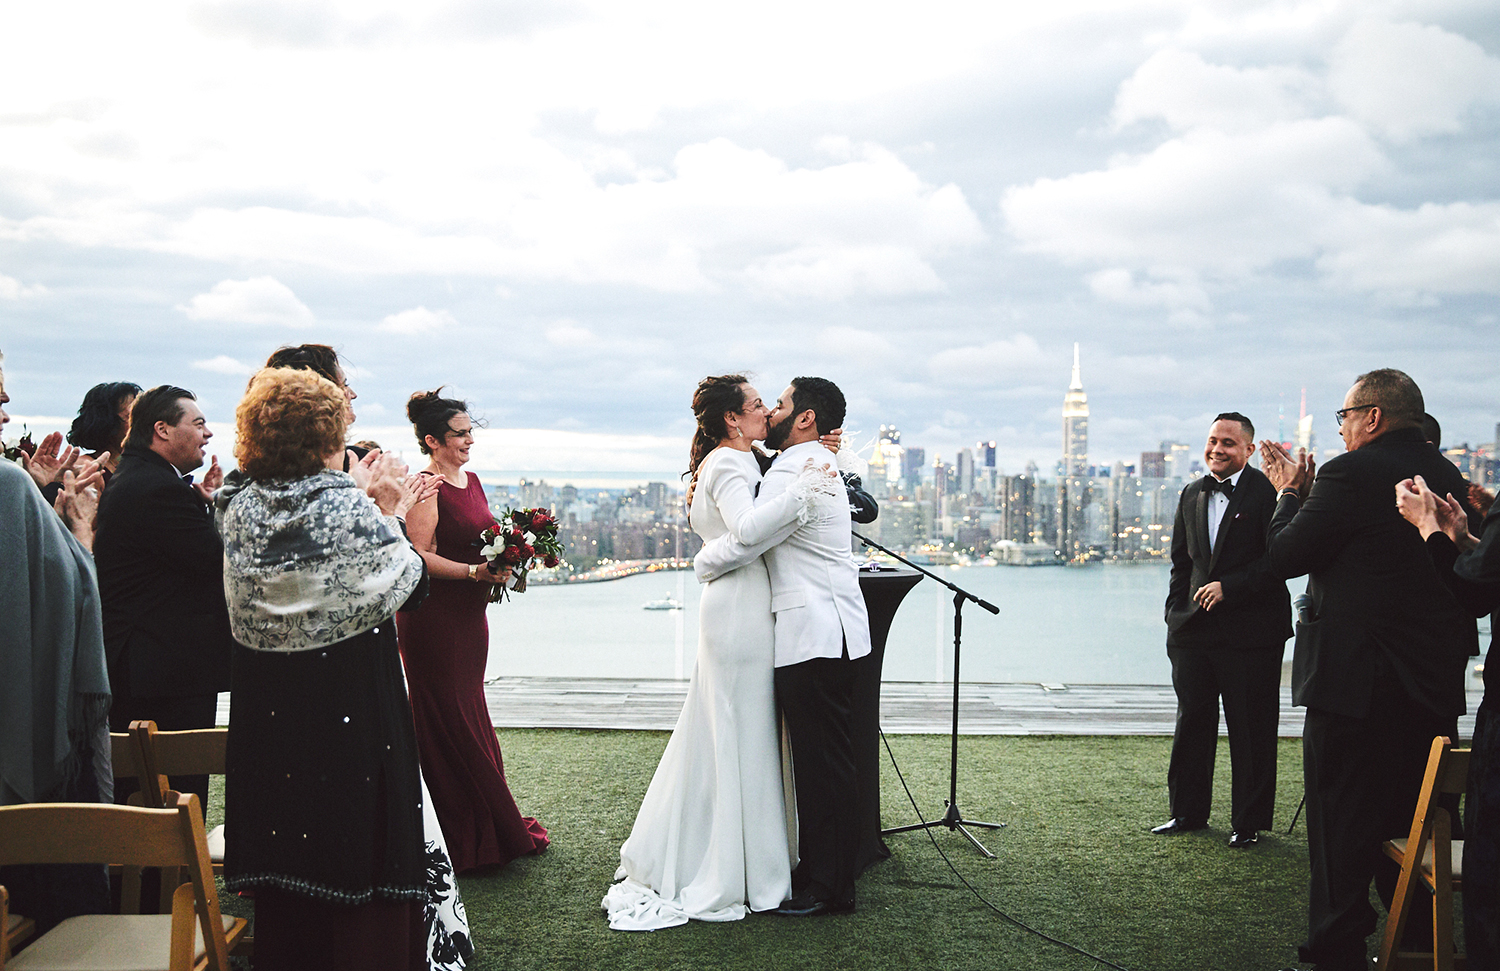 170930_WilliamValeWeddingPhotography_BrooklynWeddingPhotographer_By_BriJohnsonWeddings_0128.jpg